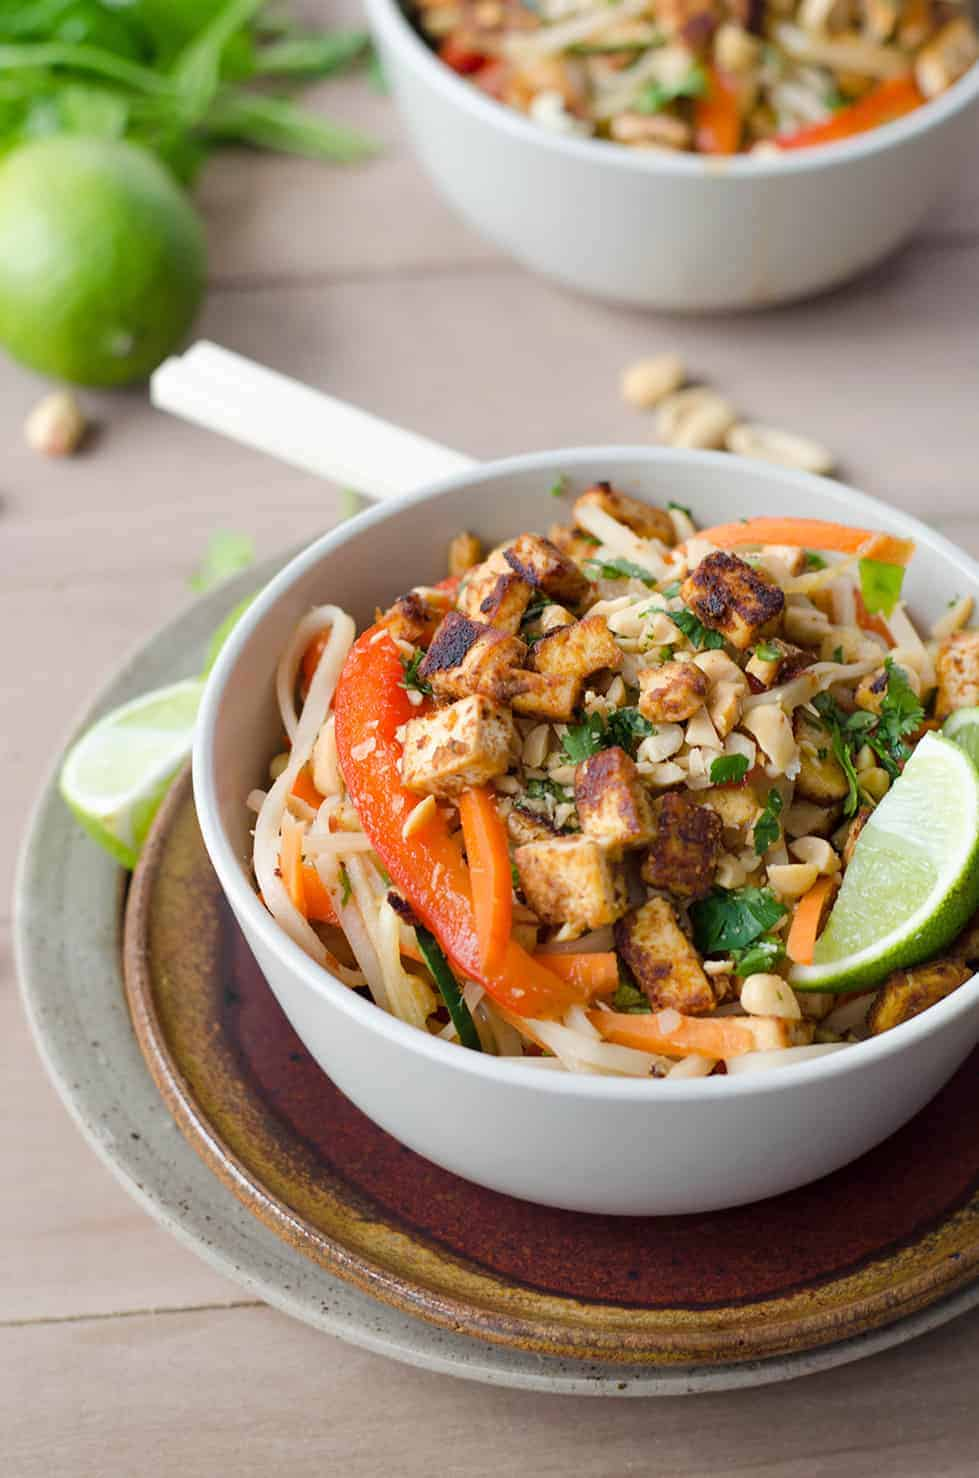 Spicy Vegan Pad Thai! Spicy pad thai with Sriracha tofu crumbles. Vegan and Gluten Free | www.delishknowledge.com